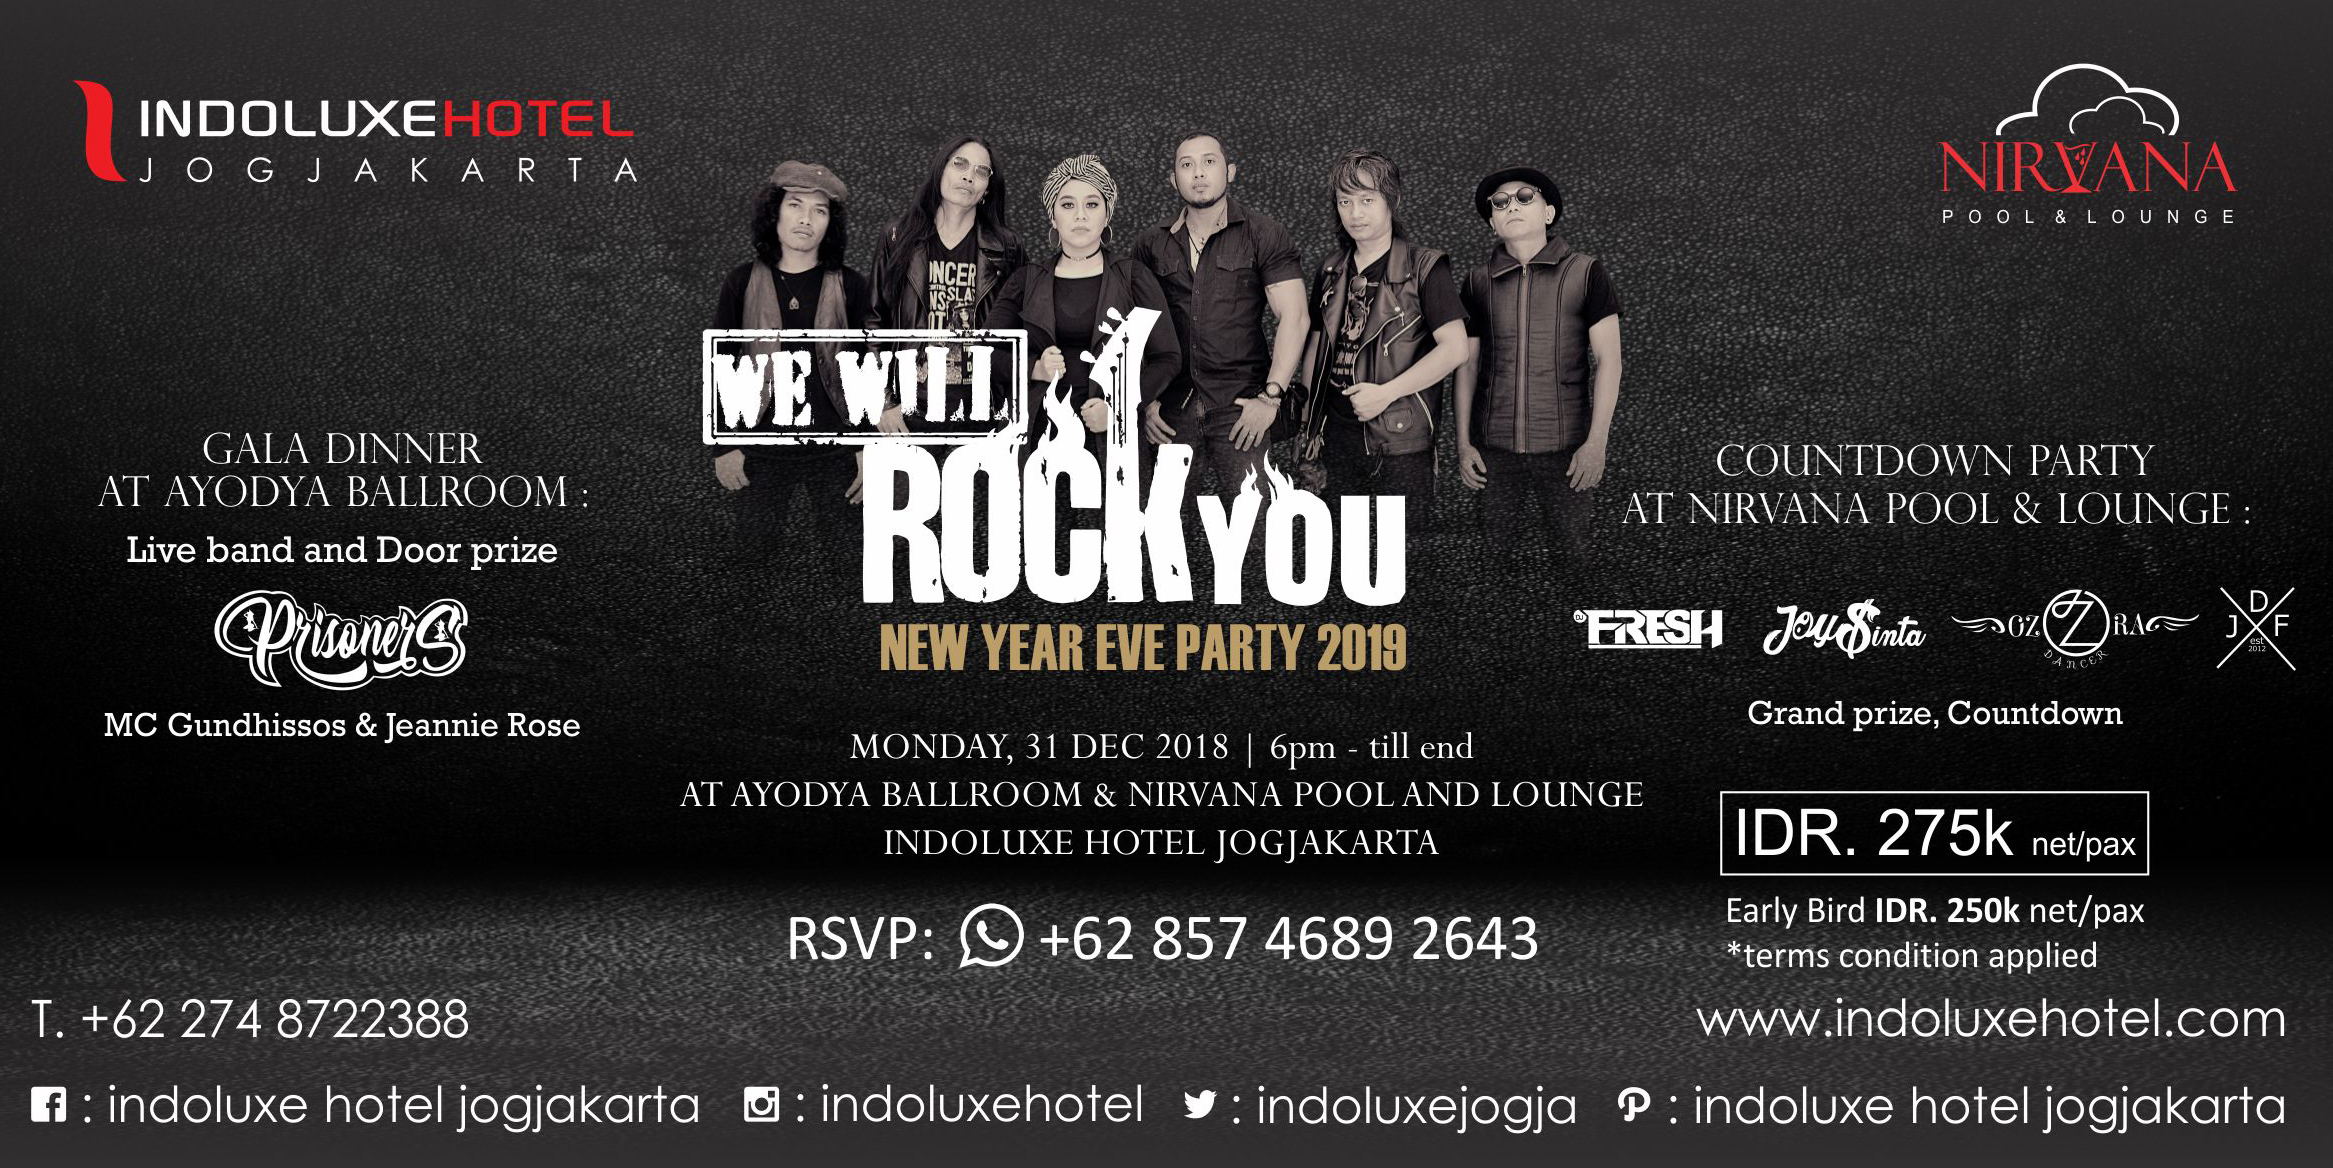 Billboard WE WILL ROCK YOU